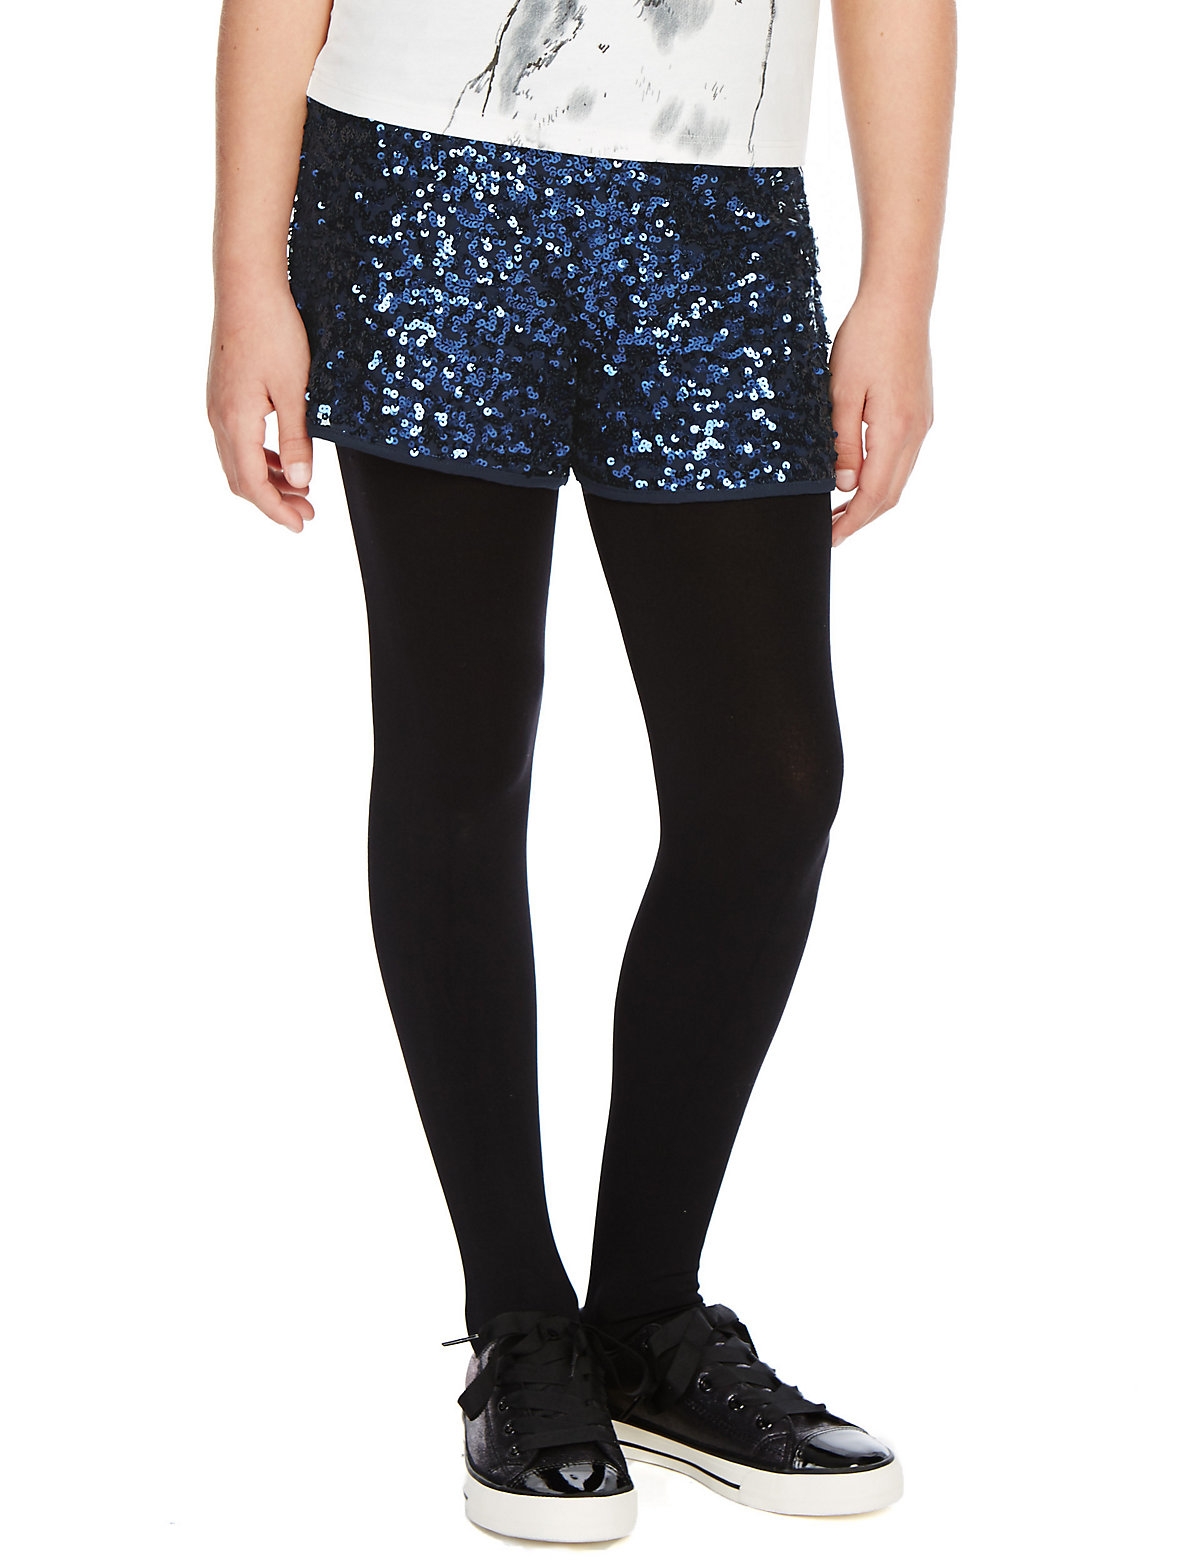 Sequin Embellished Shorts 5 14 Years Blue 13 14 Years